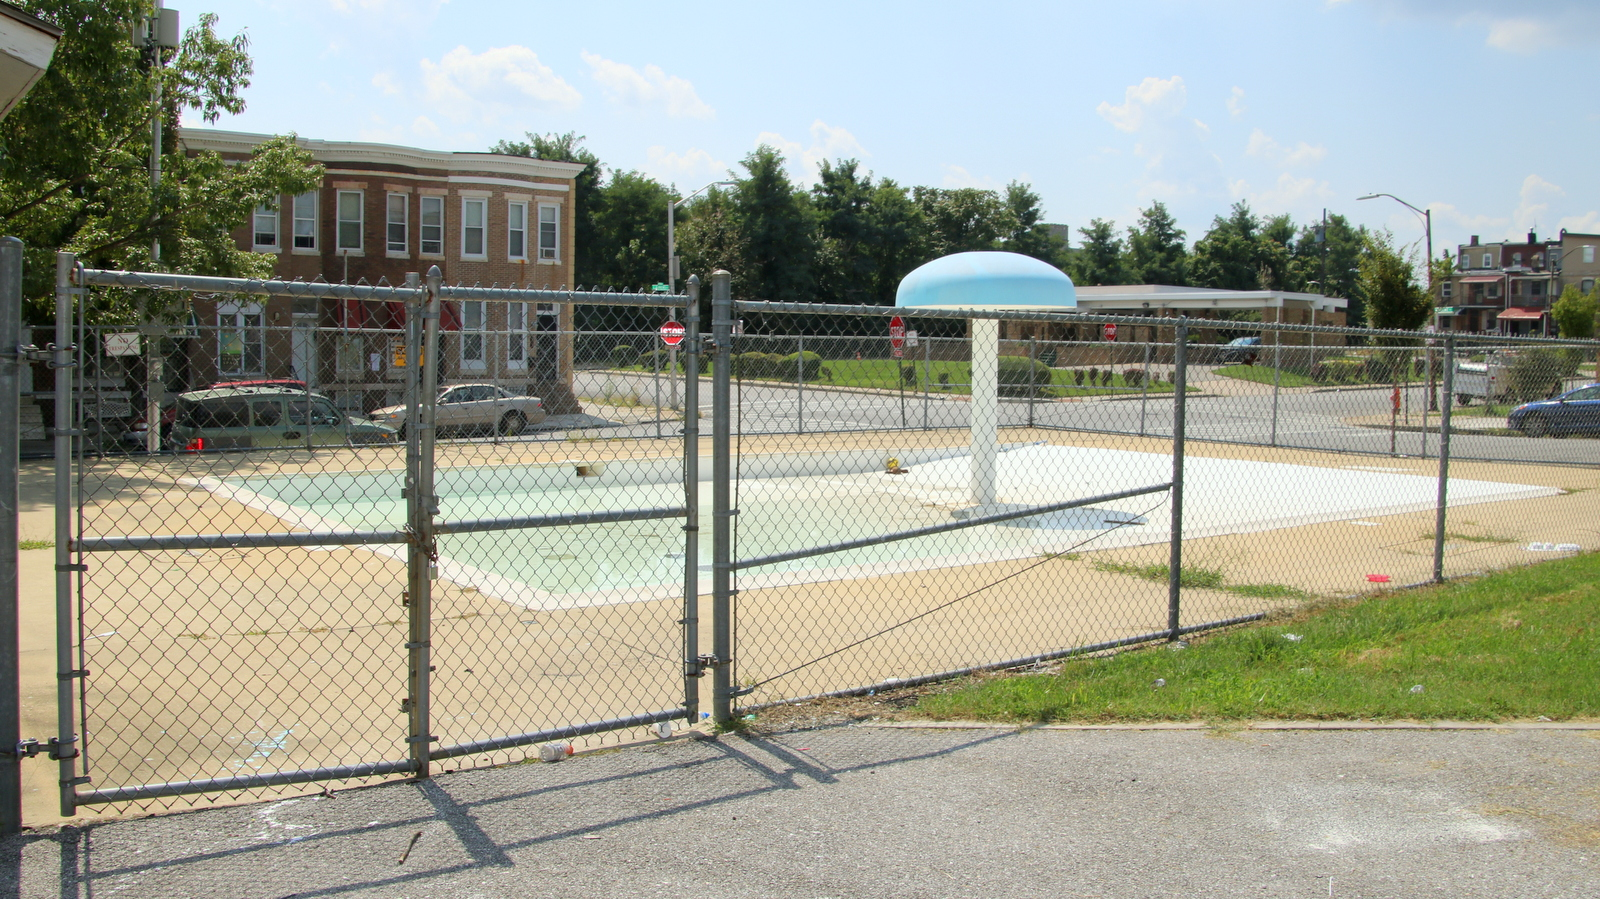 Residents said the William McAbee/ Lillian Jones wading pool was closed for most of the summer. (Fern Shen)